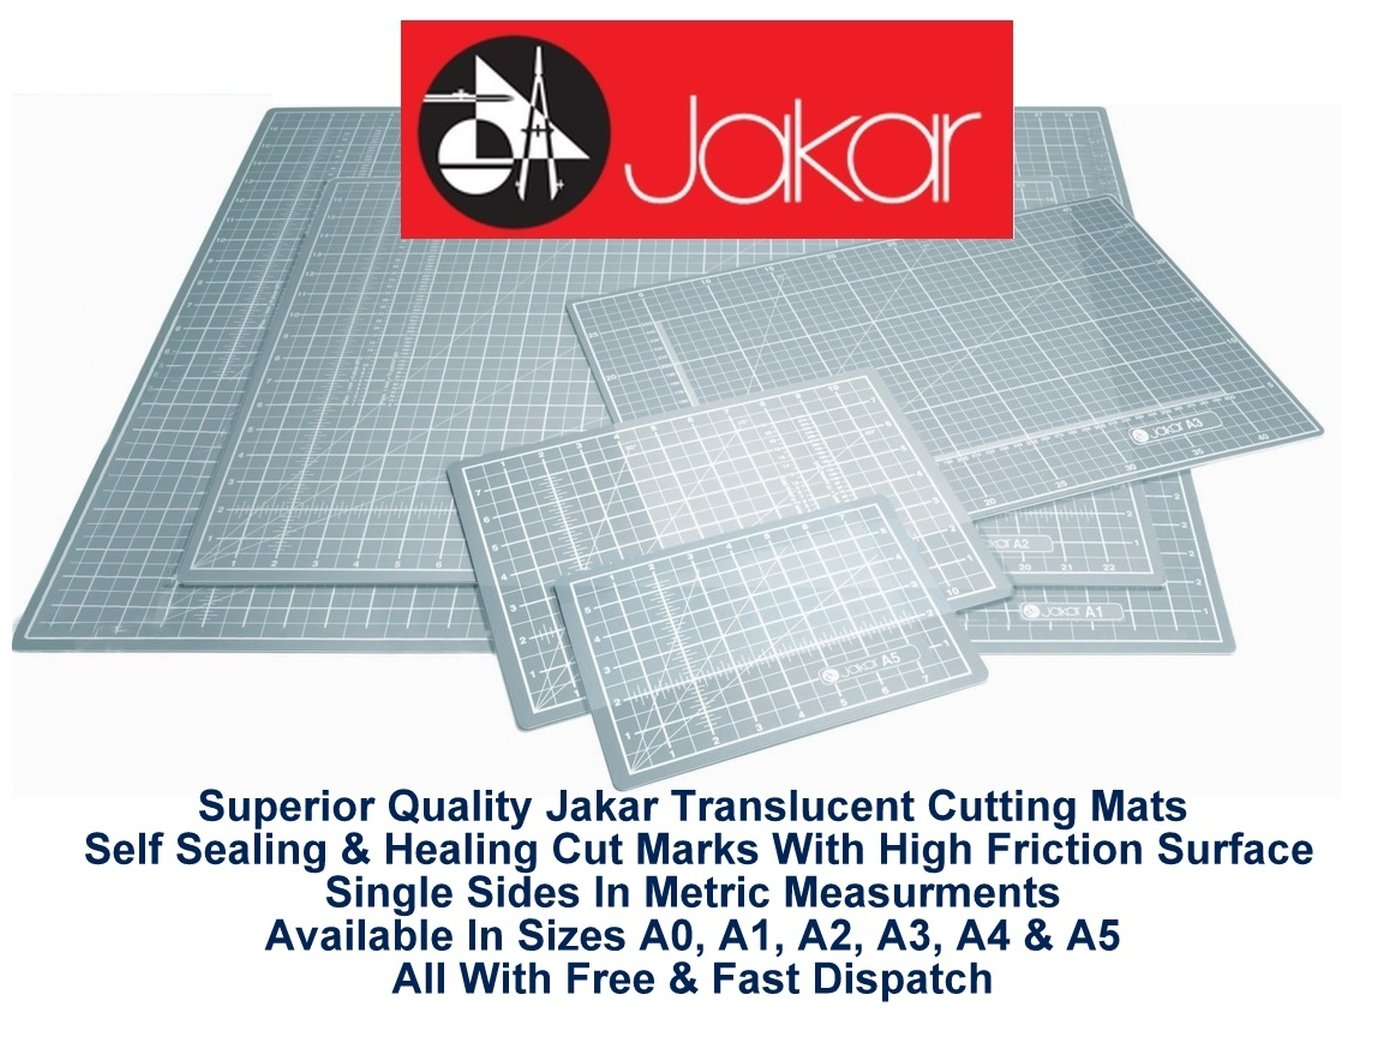 Jakar A1 Translucent Self Healing Sealing Cutting Mat Single Sided Metric cm mm Non Slip Printed Square Grid Line Professional Quality (600 X 900 X 3mm)